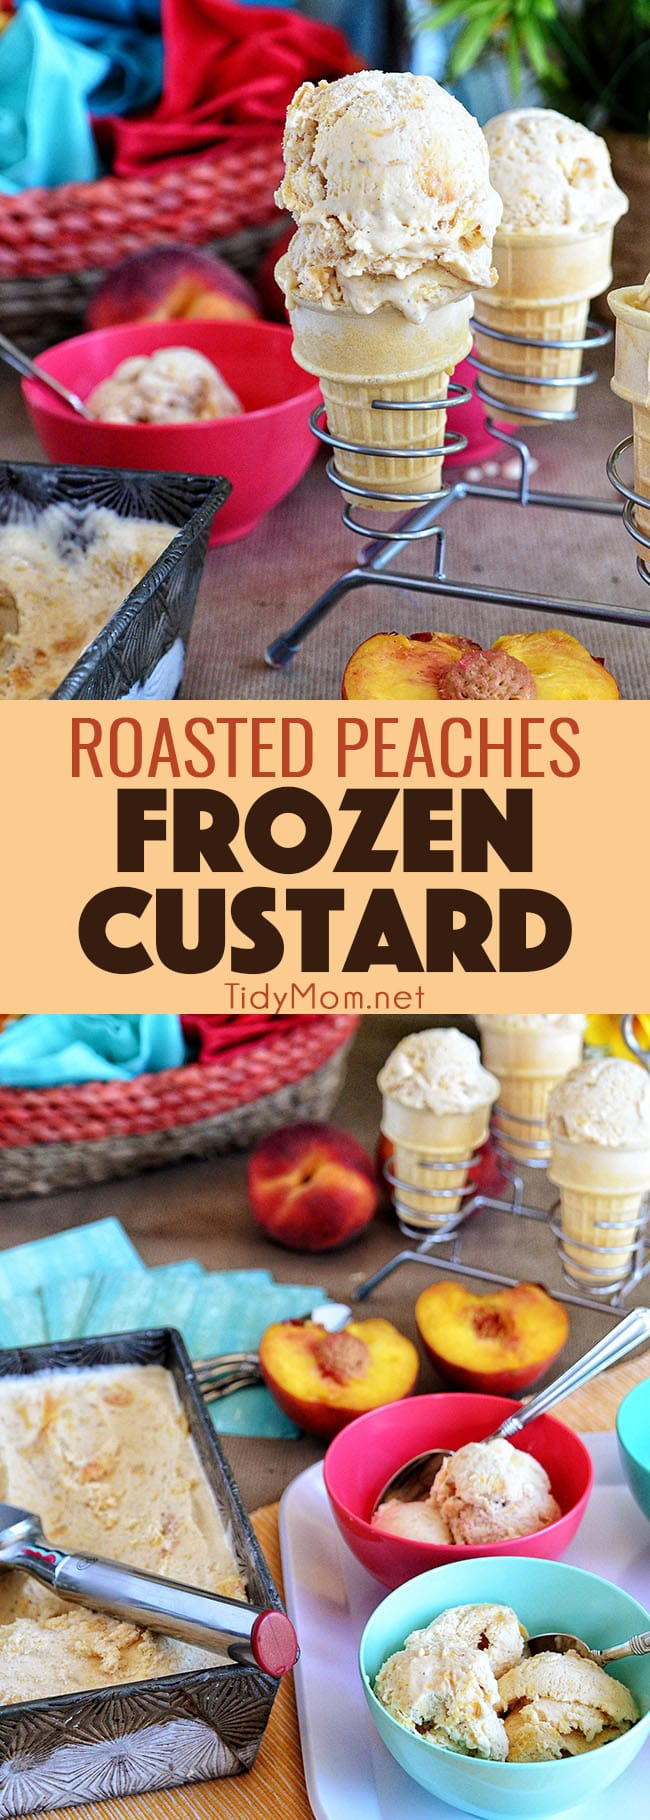 Roasted Peach Frozen Custard on a cone and in a bowl